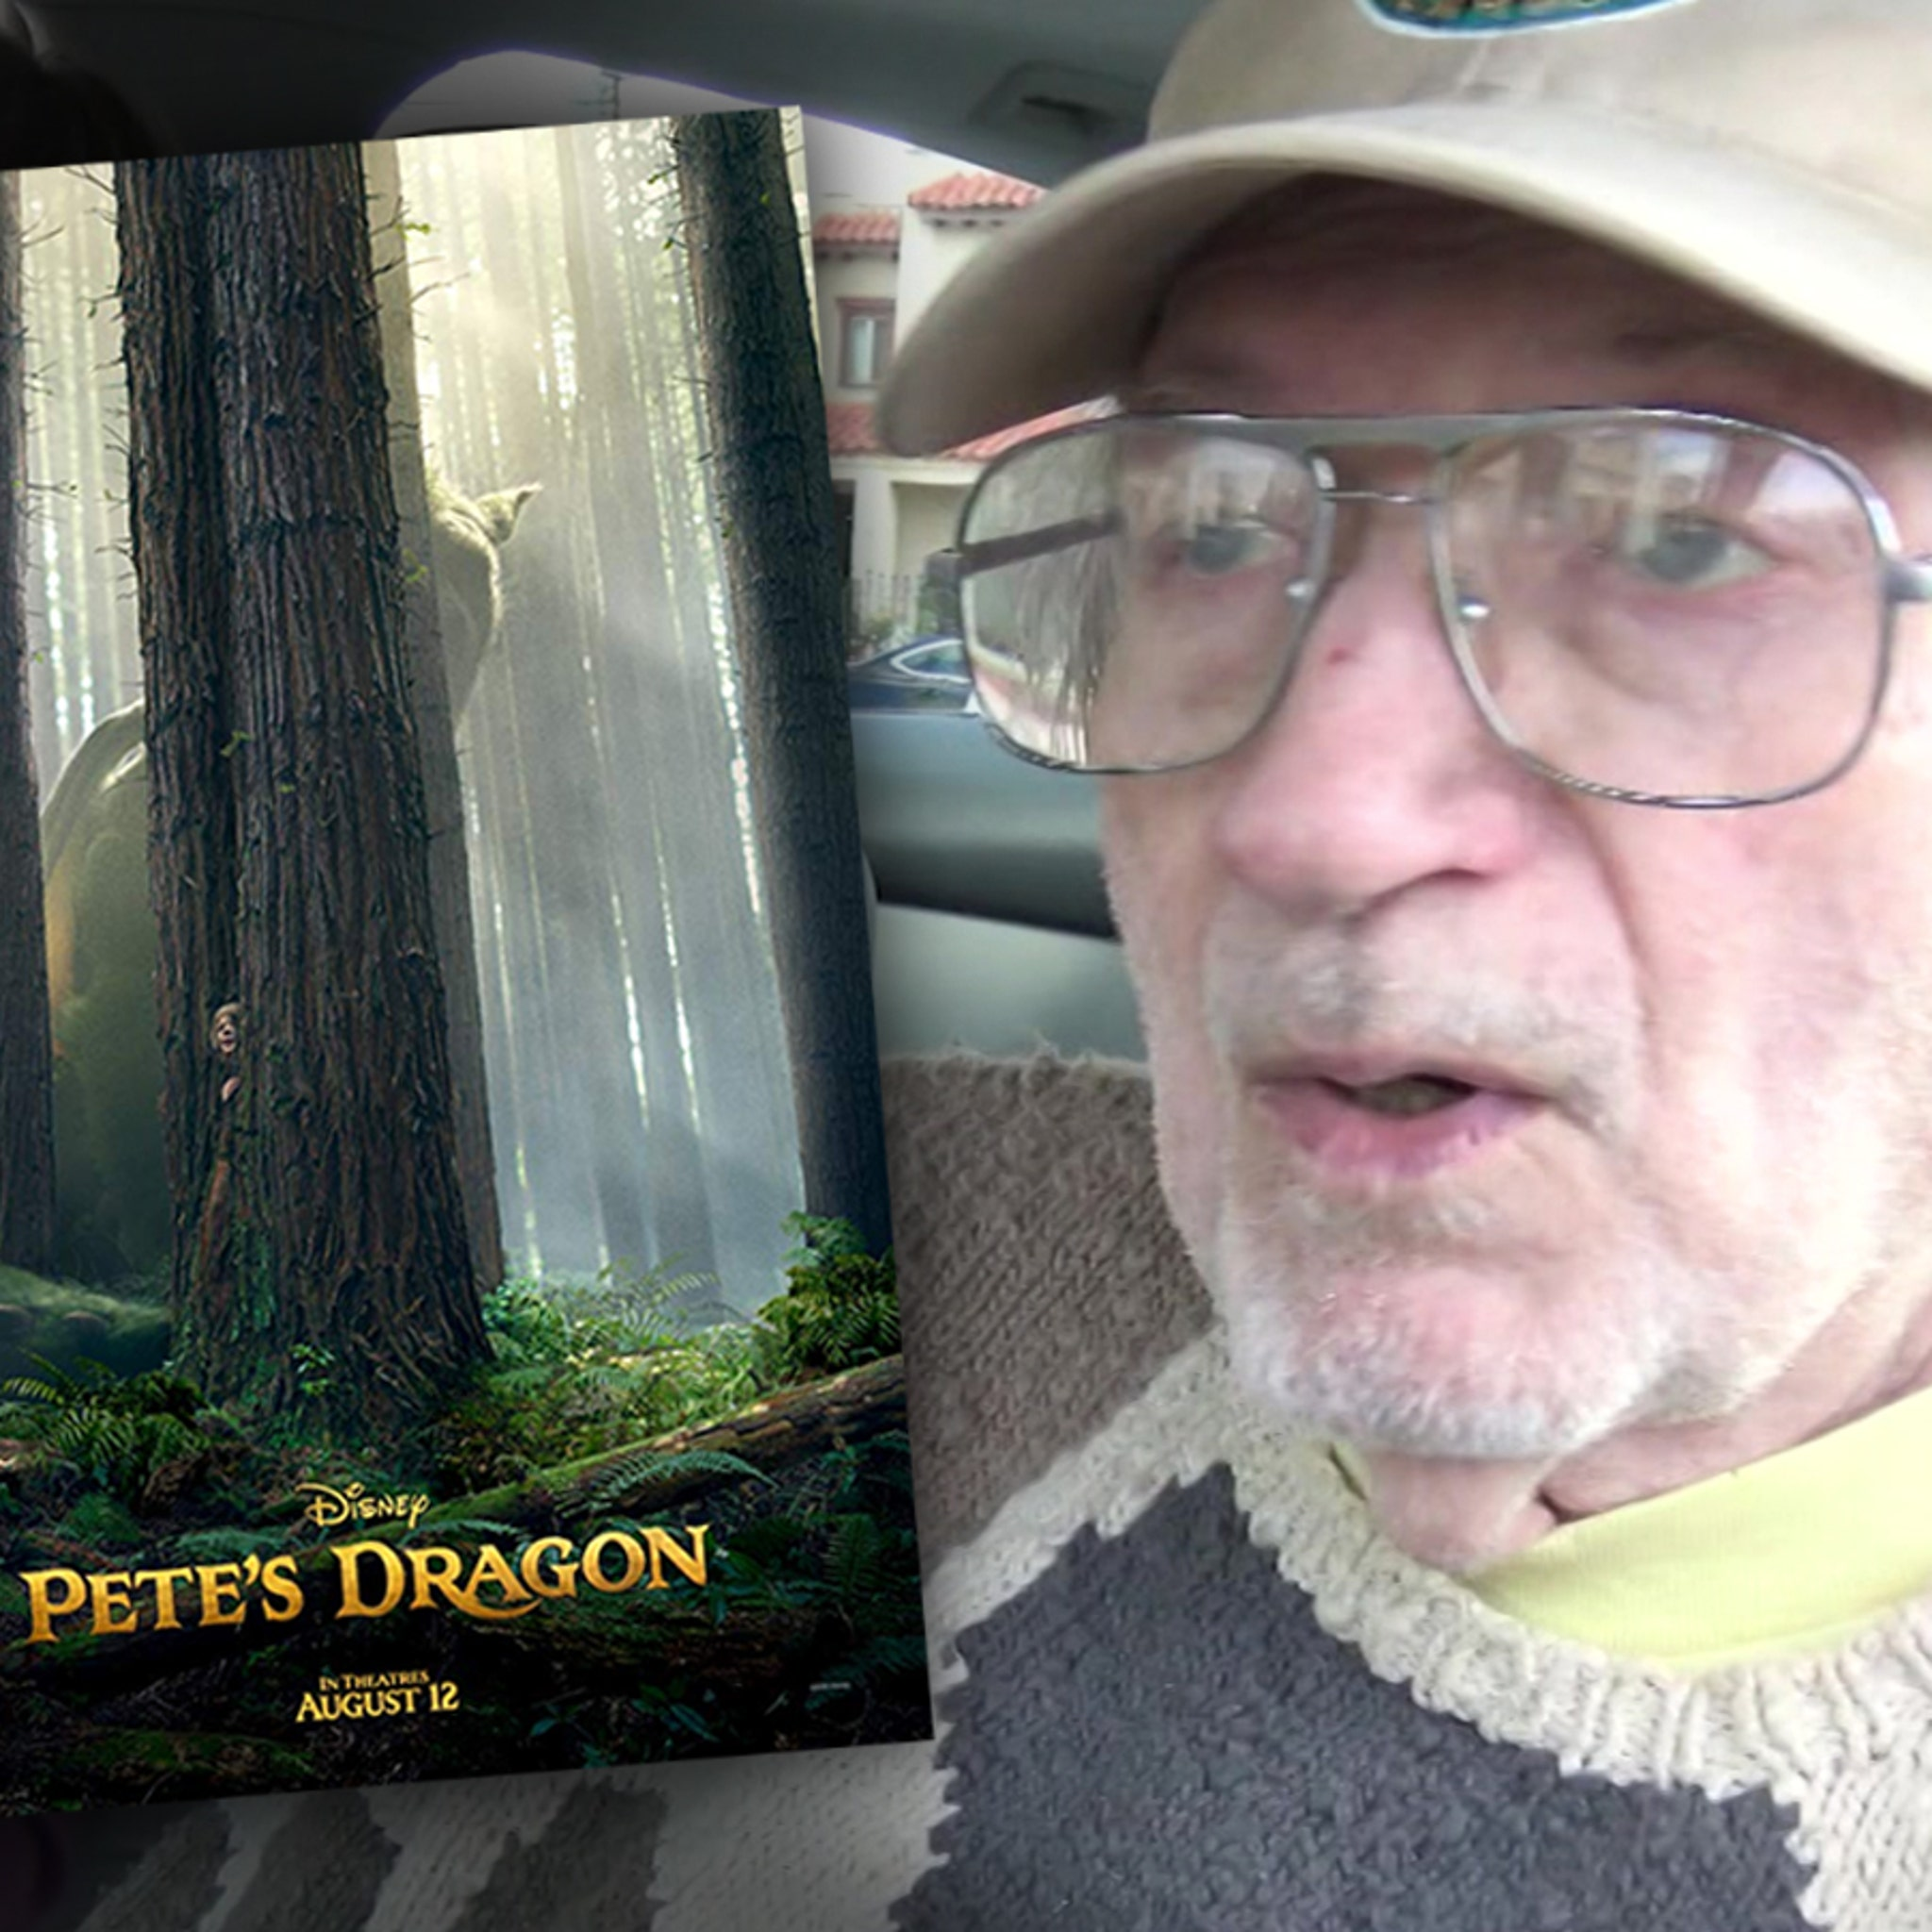 'Pete's Dragon' Writer Says Sons Duped Him into Screwing Over His Wife